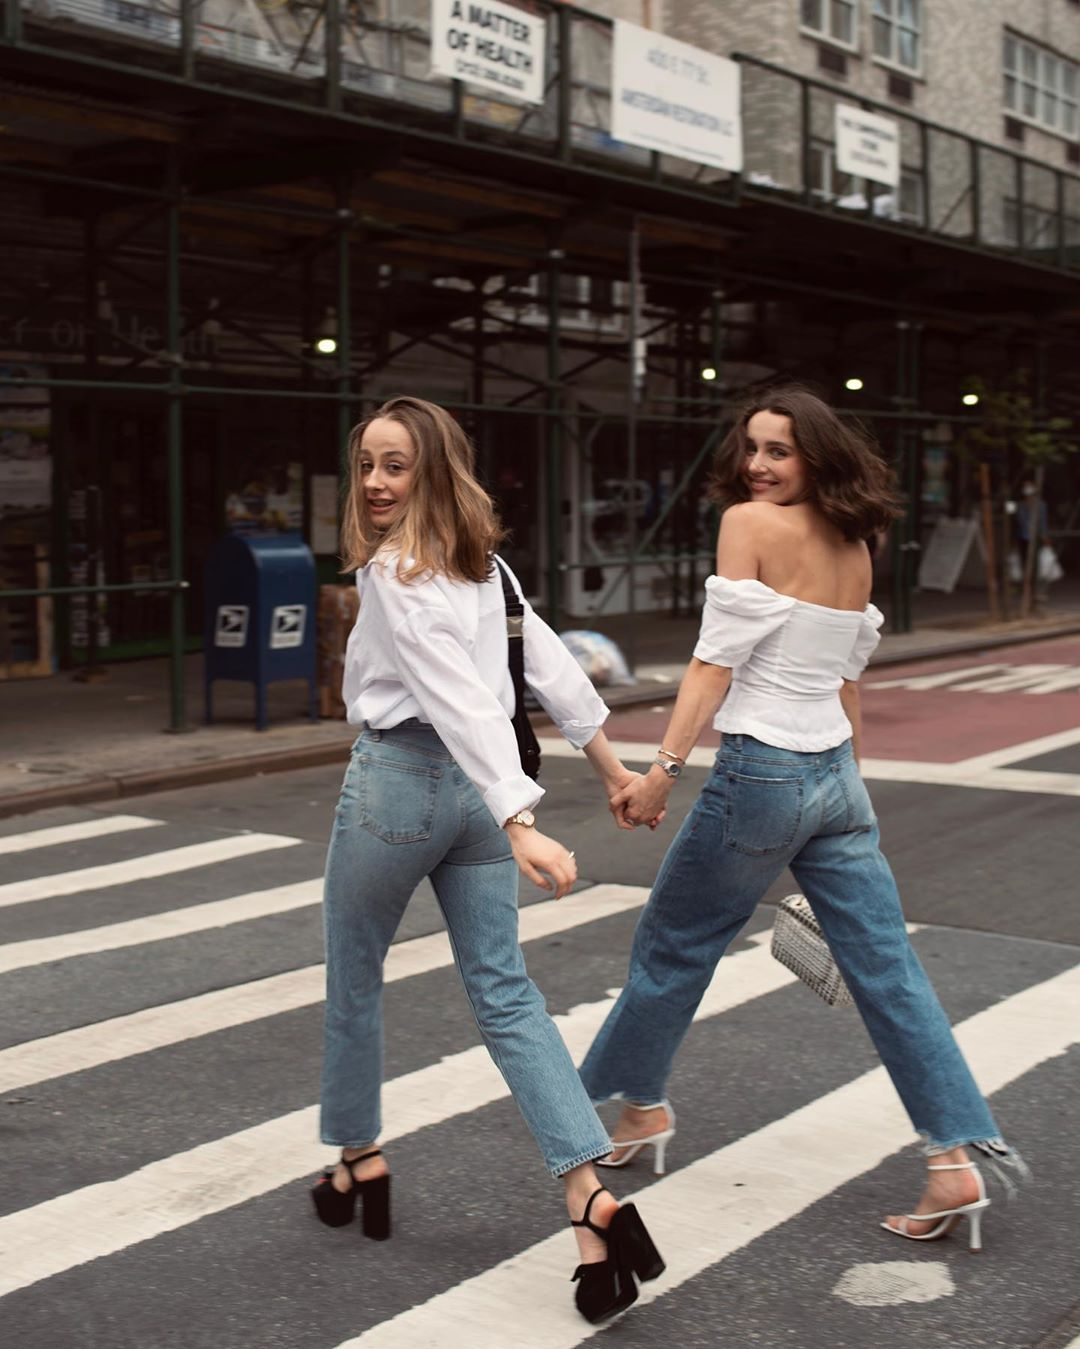 Crisp White Tops are a Timeless Summer Essential